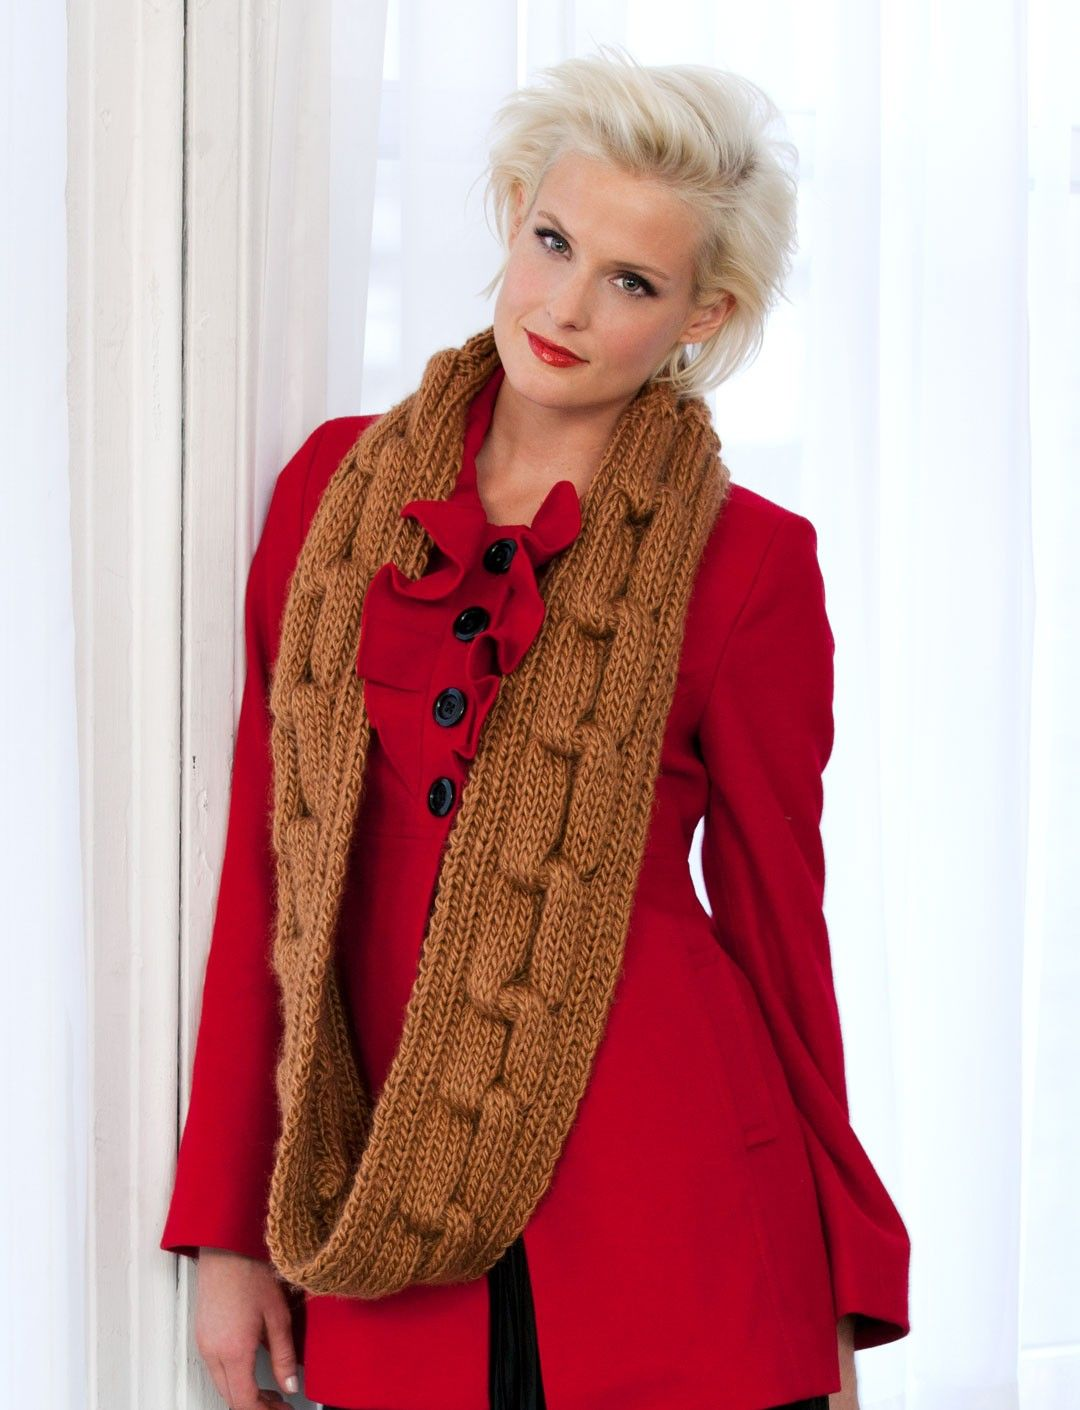 Knit Eternity Scarf | More knitting inspirations | Pinterest | Tejer ...